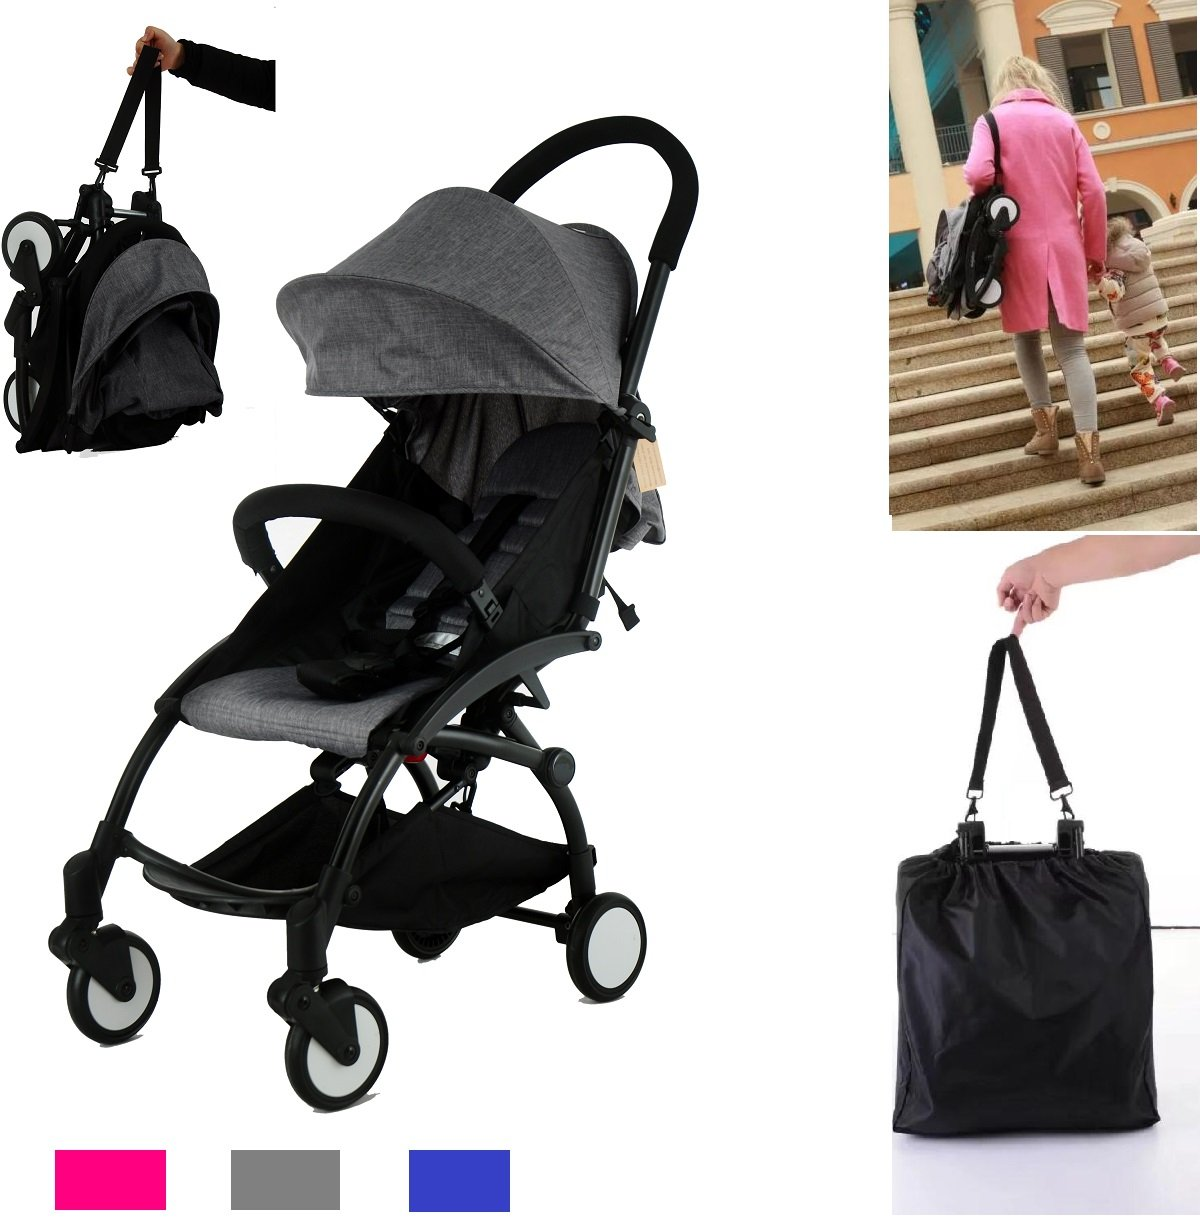 Flykids Travel Easy Lightweight Pram Buggy Travel Pushchair Stroller Carry Bag eith Rain Cover Recliner Rainer Cover Fits in Small CAR Boots Peugeot 107 /& Fiat 500C Light Grey